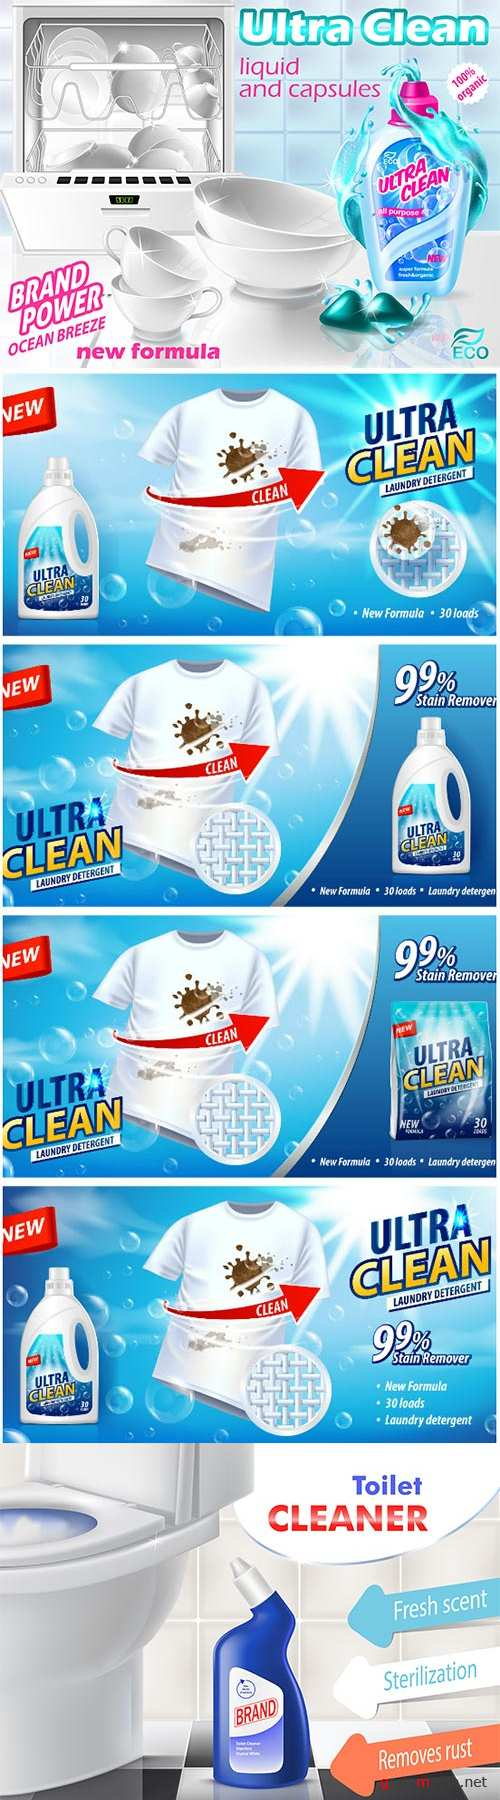 Mockup for brand advertising vector design, laundry detergent, liquid cleaner and capsules for dishwasher